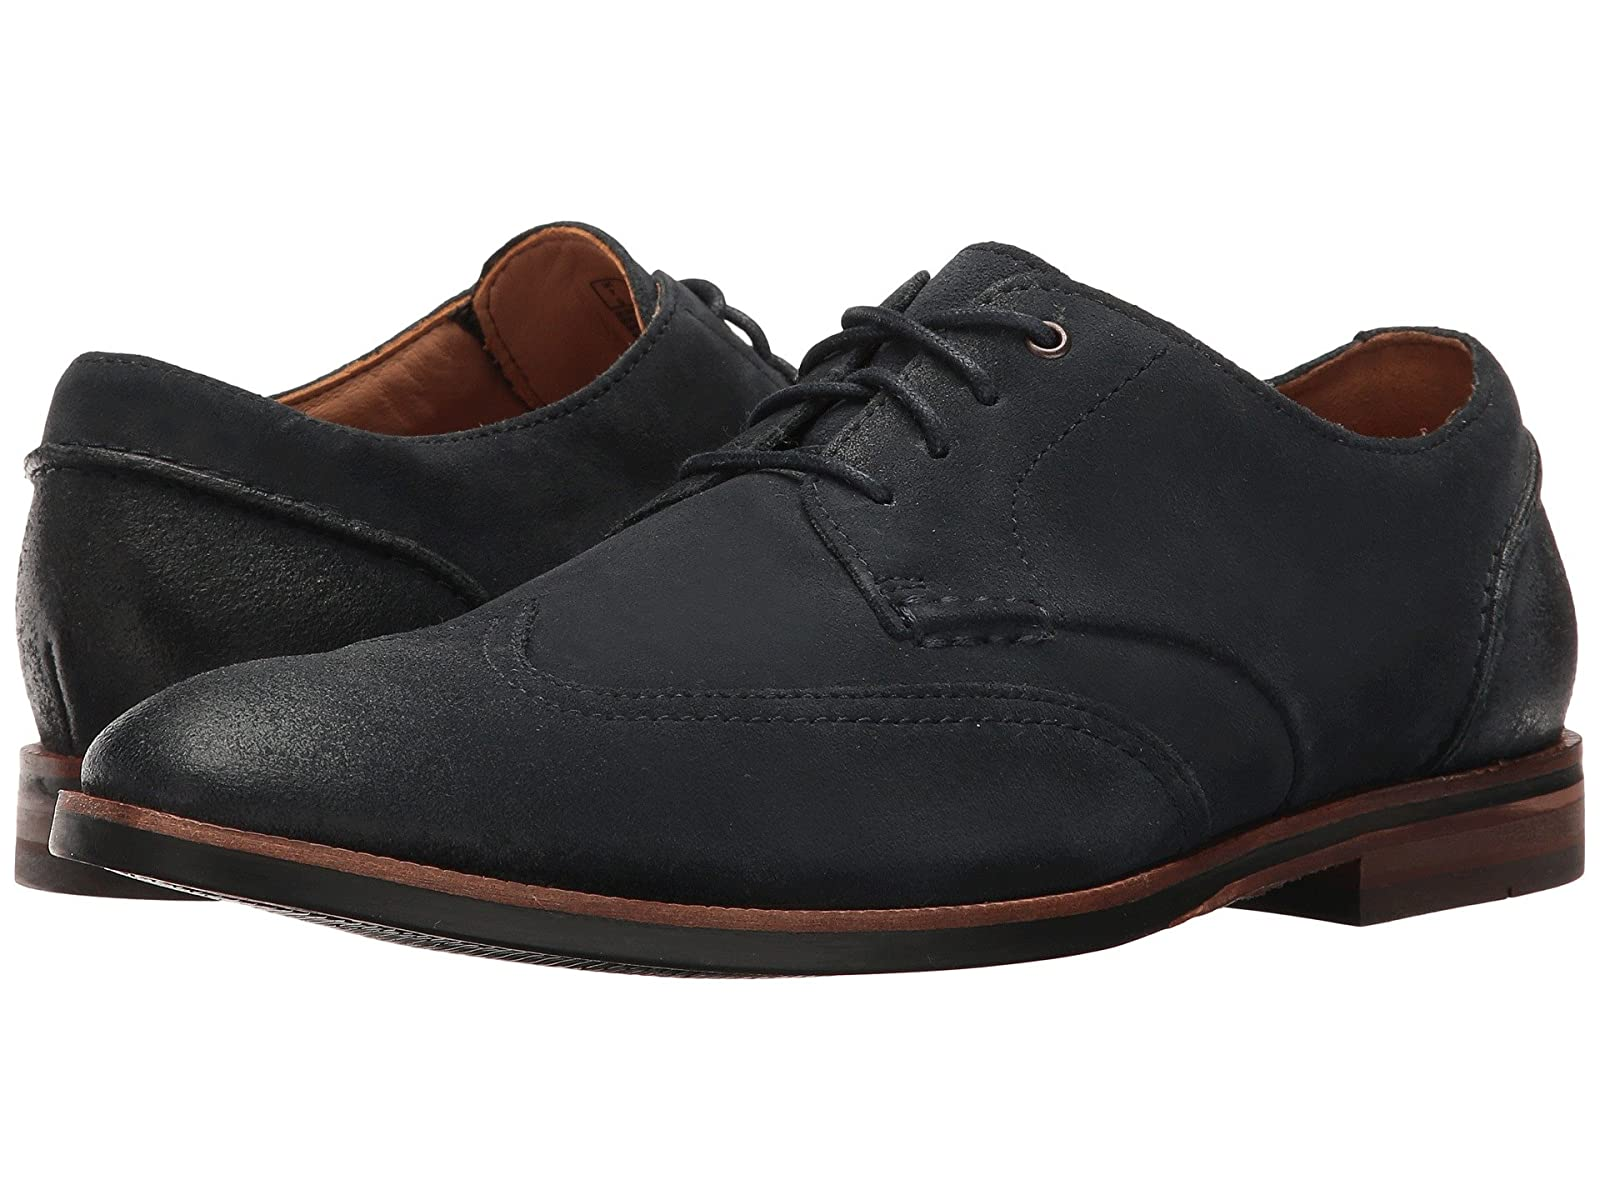 Clarks Broyd WingCheap and distinctive eye-catching shoes